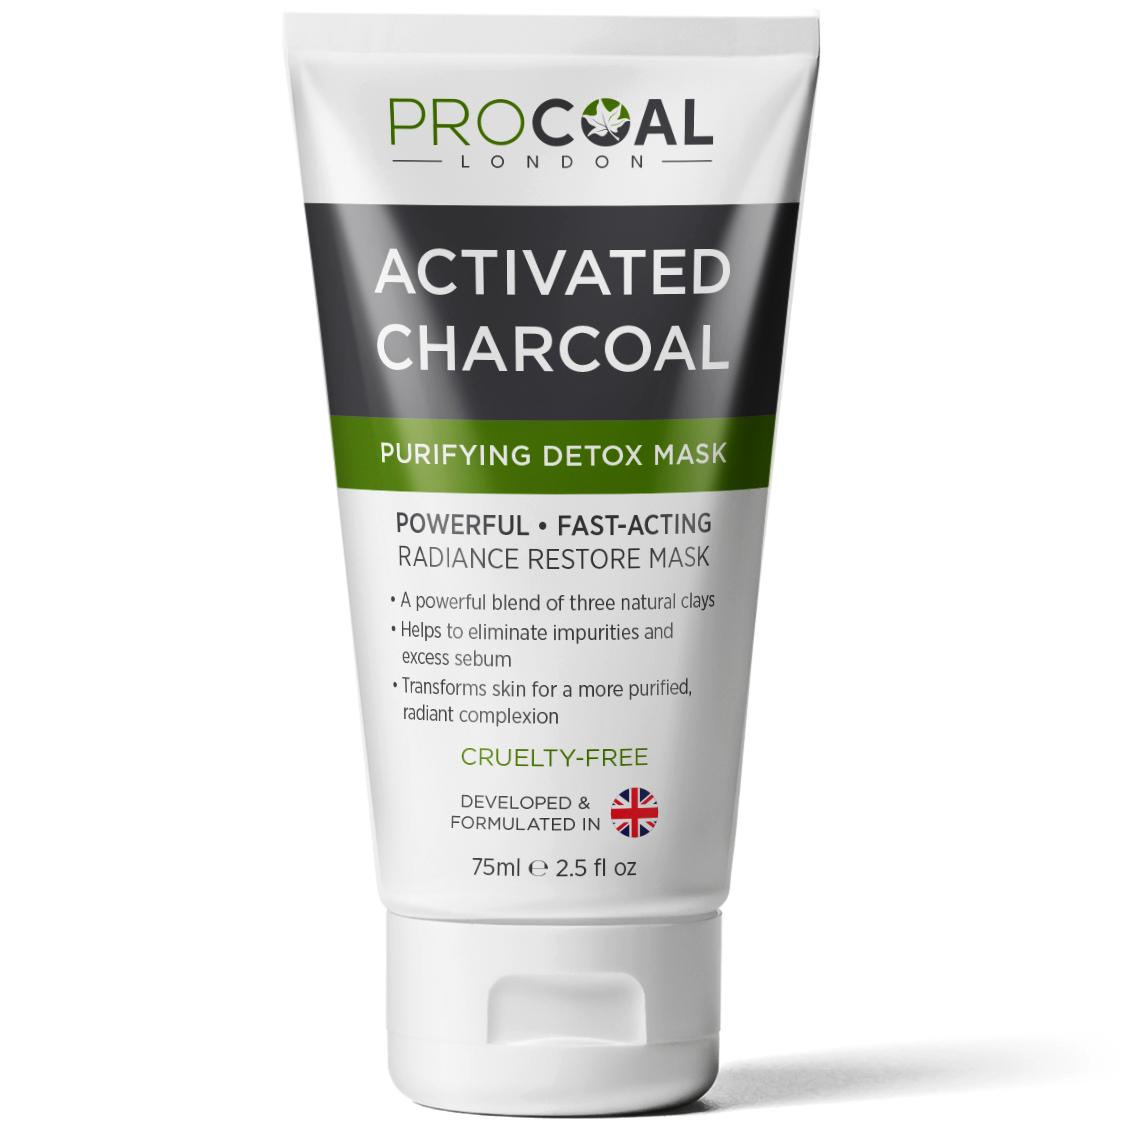 Quick Skin Revamp Diy Charcoal Mask: Purifying Charcoal Face Mask 75ml By PROCOAL